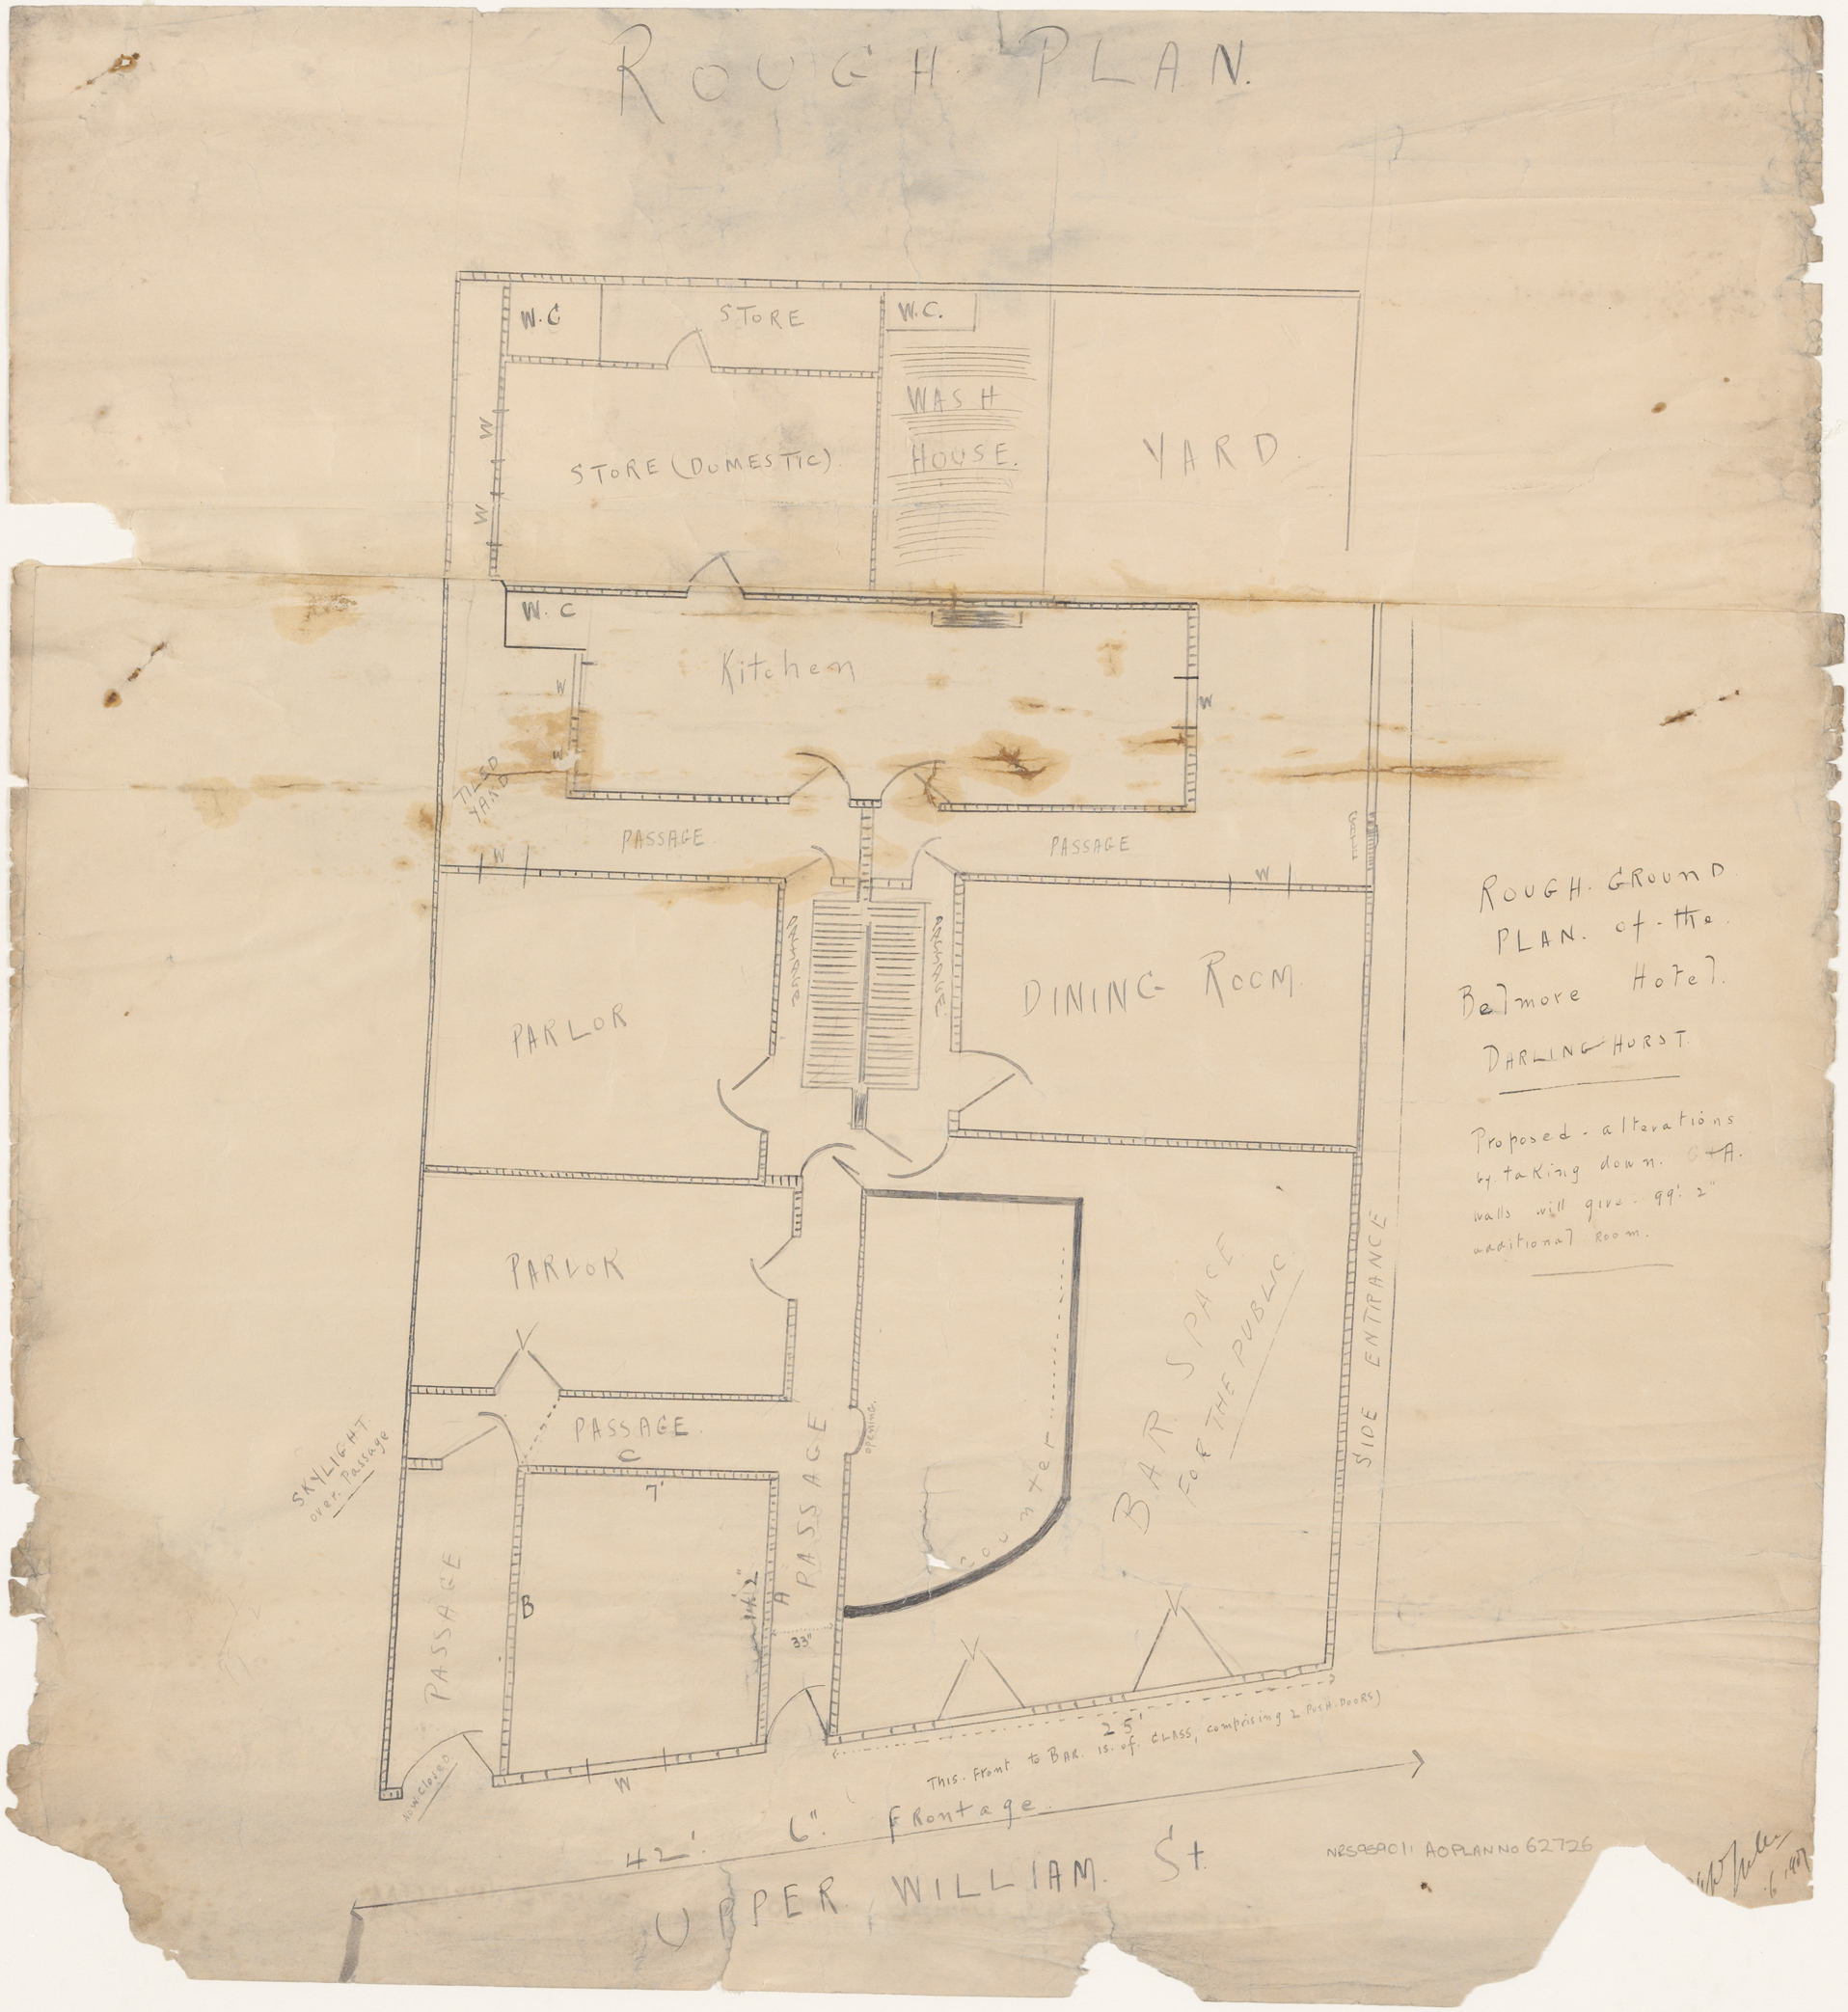 Belmore Hotel, Upper William Street, Darlinghurst, Rough ground floor plan, proposed alterations, Applicant/owner, William Bourke.  Signed June 1907